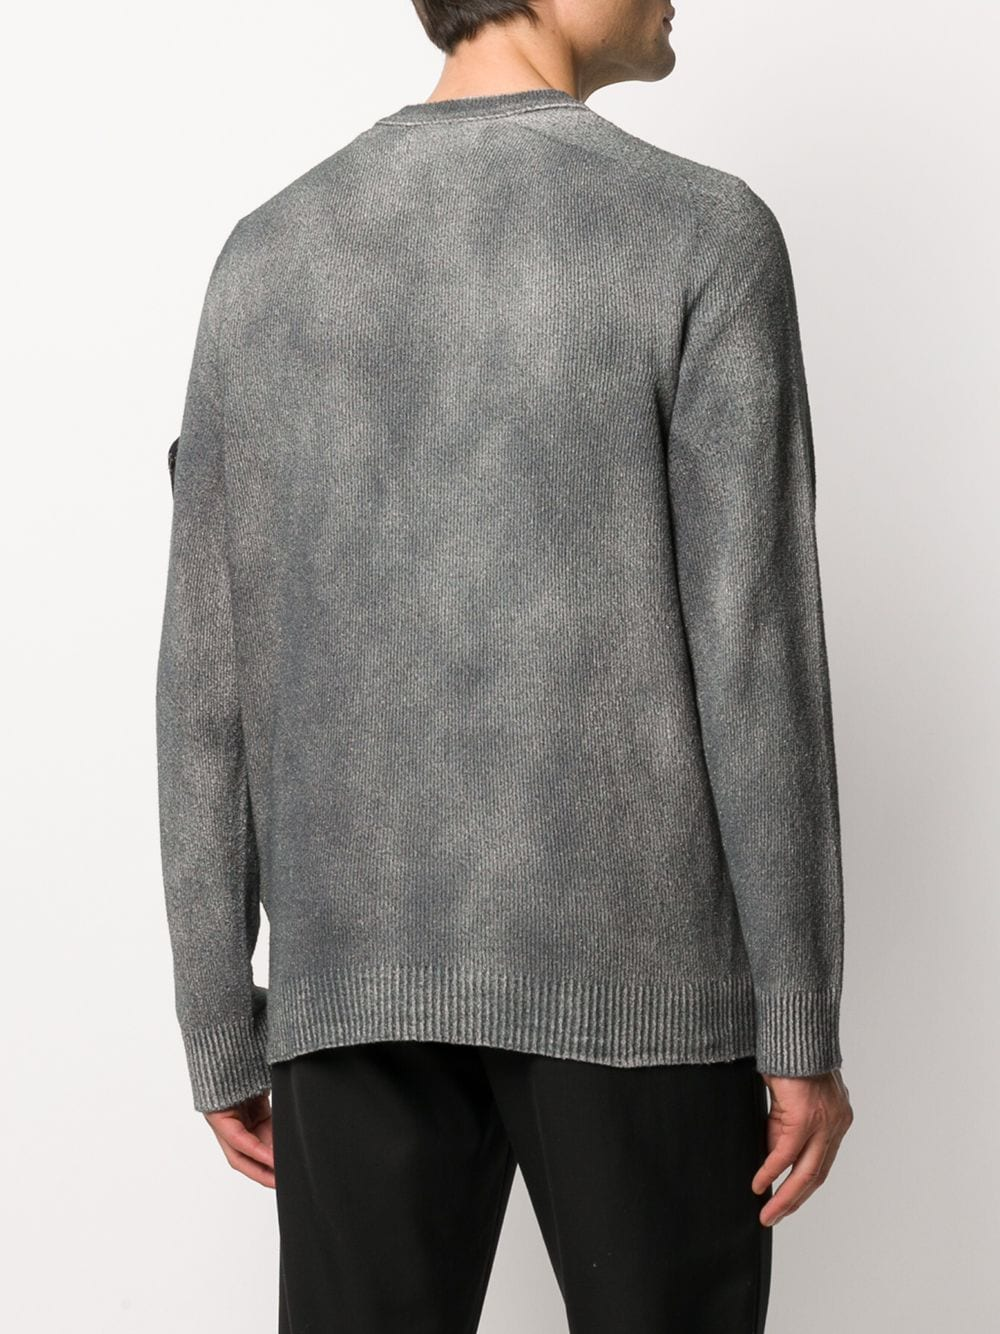 STONE ISLAND MEN TWO TONED SWEATER